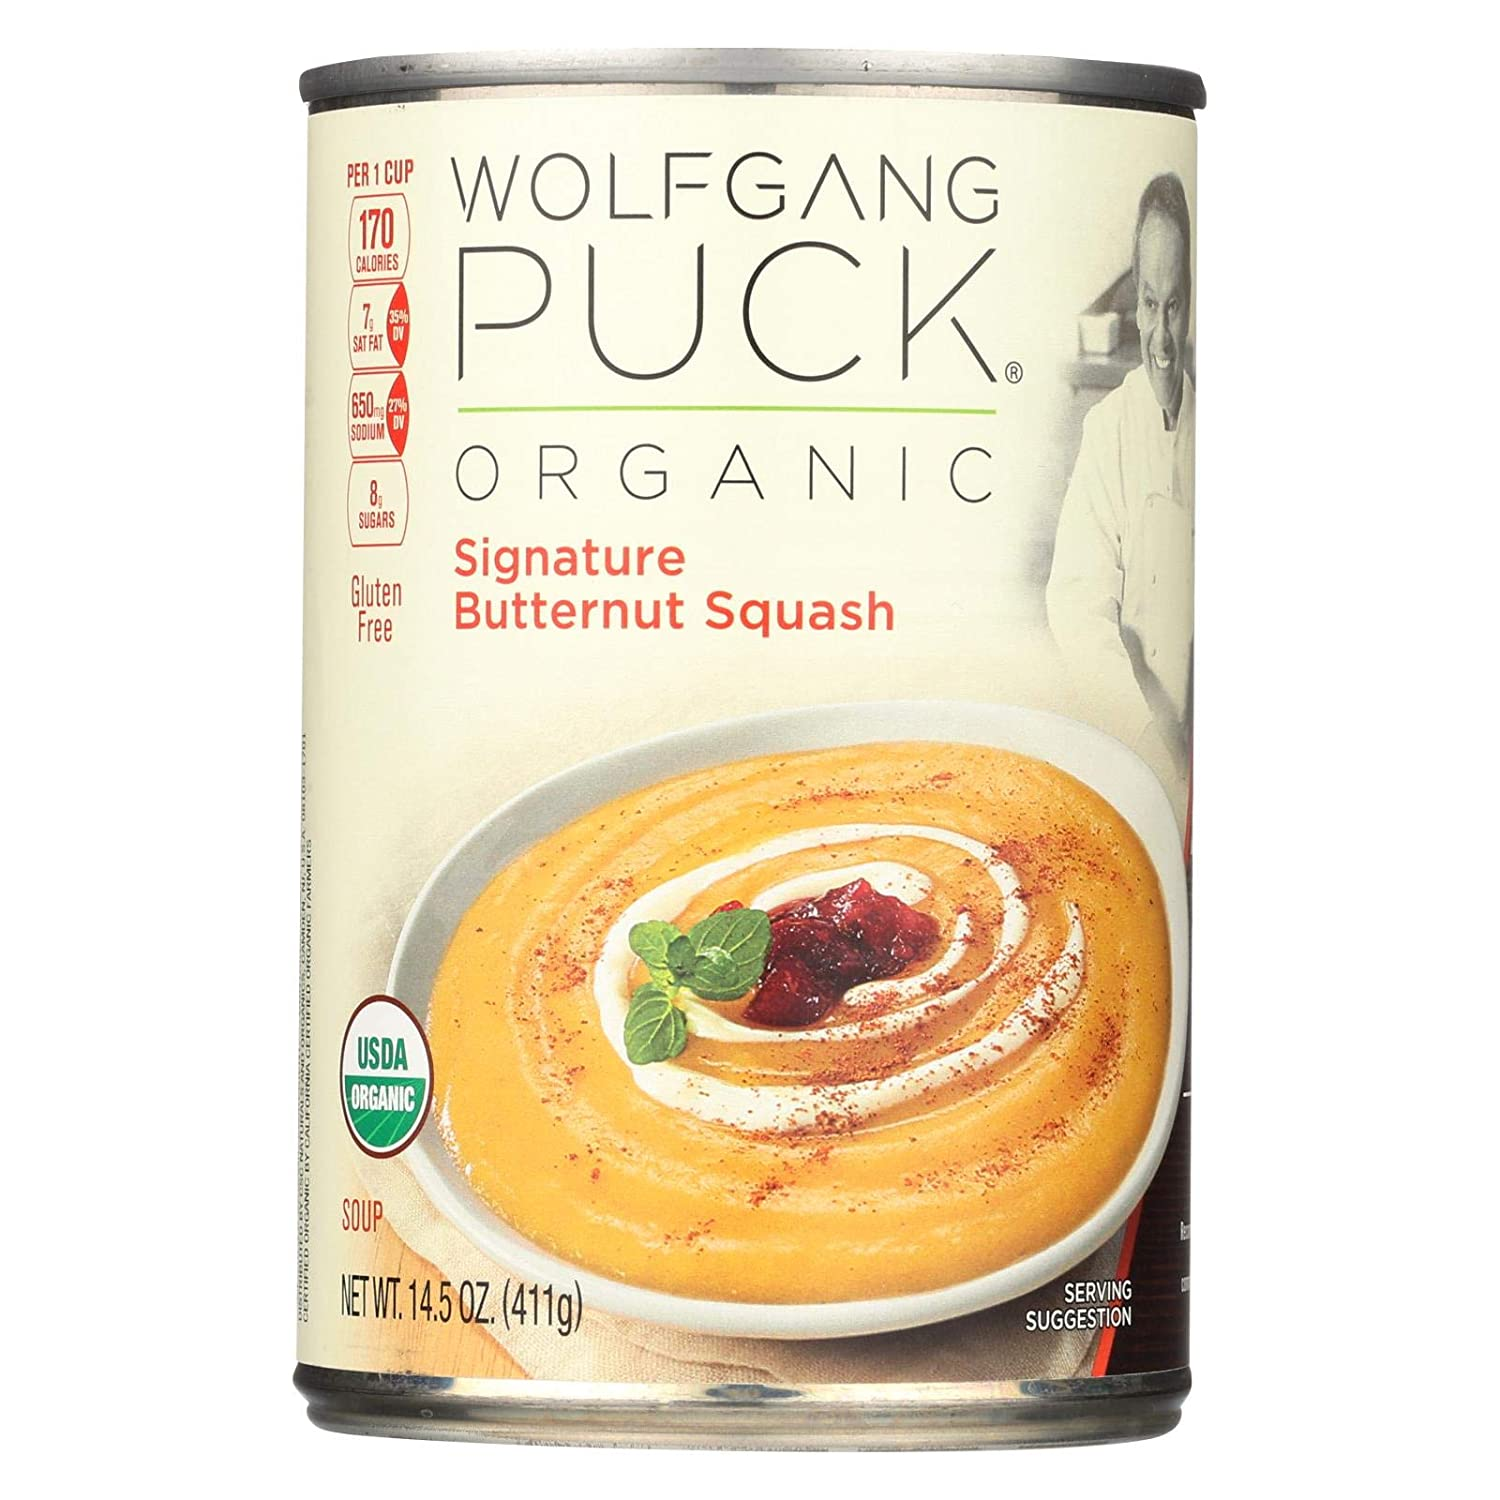 Wolfgang Puck Creamy Butternut Squash Soup 14.5 Oz -Pack of 12